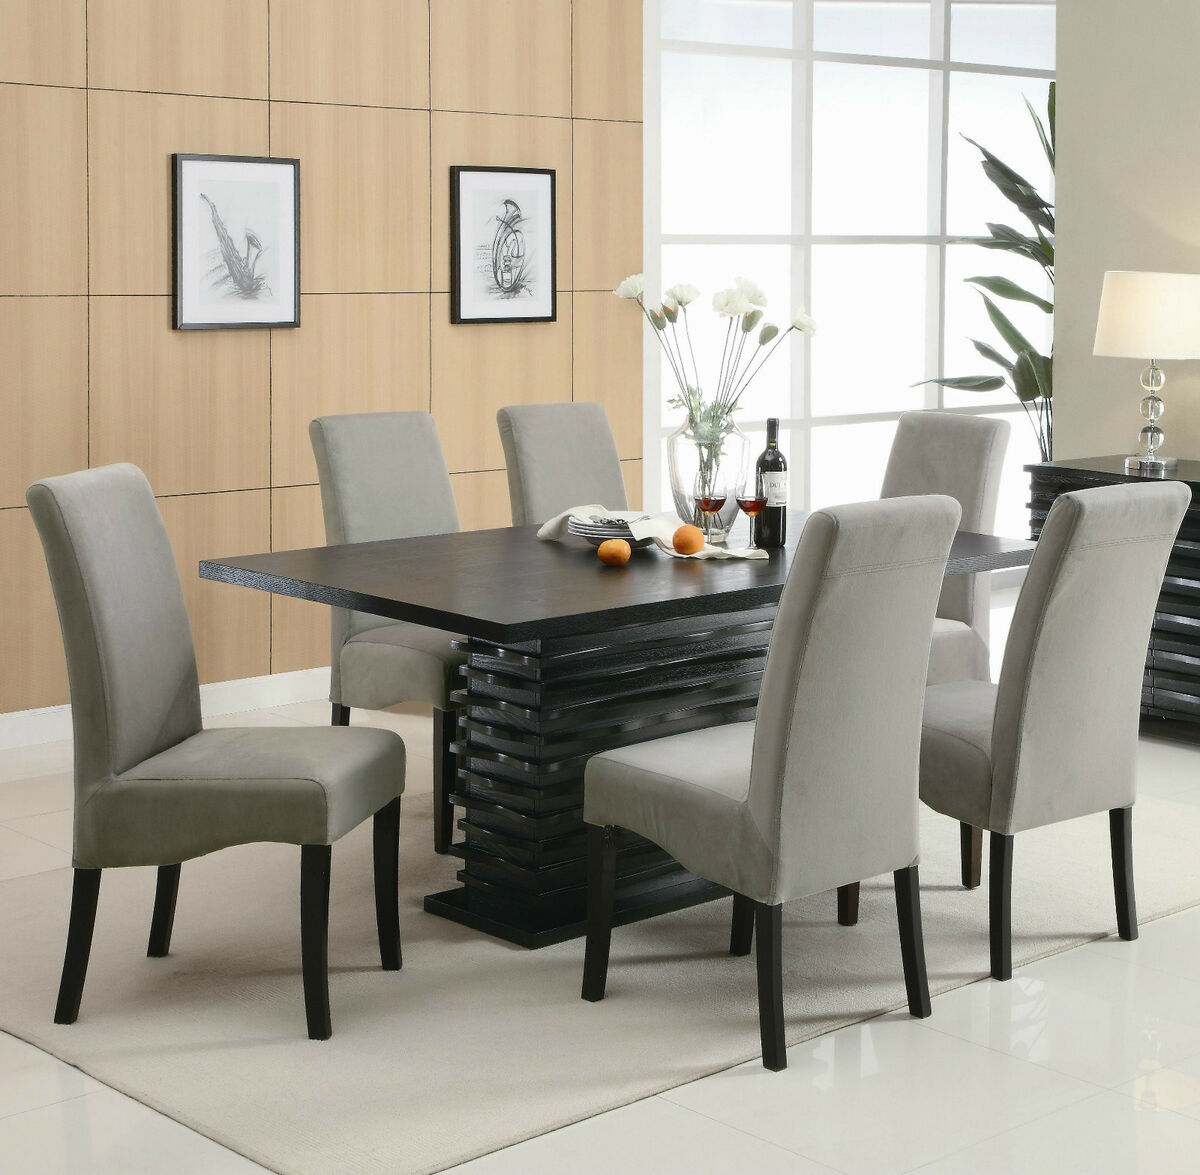 Top Contemporary Dining Table Sets 1200 x 1175 · 161 kB · jpeg